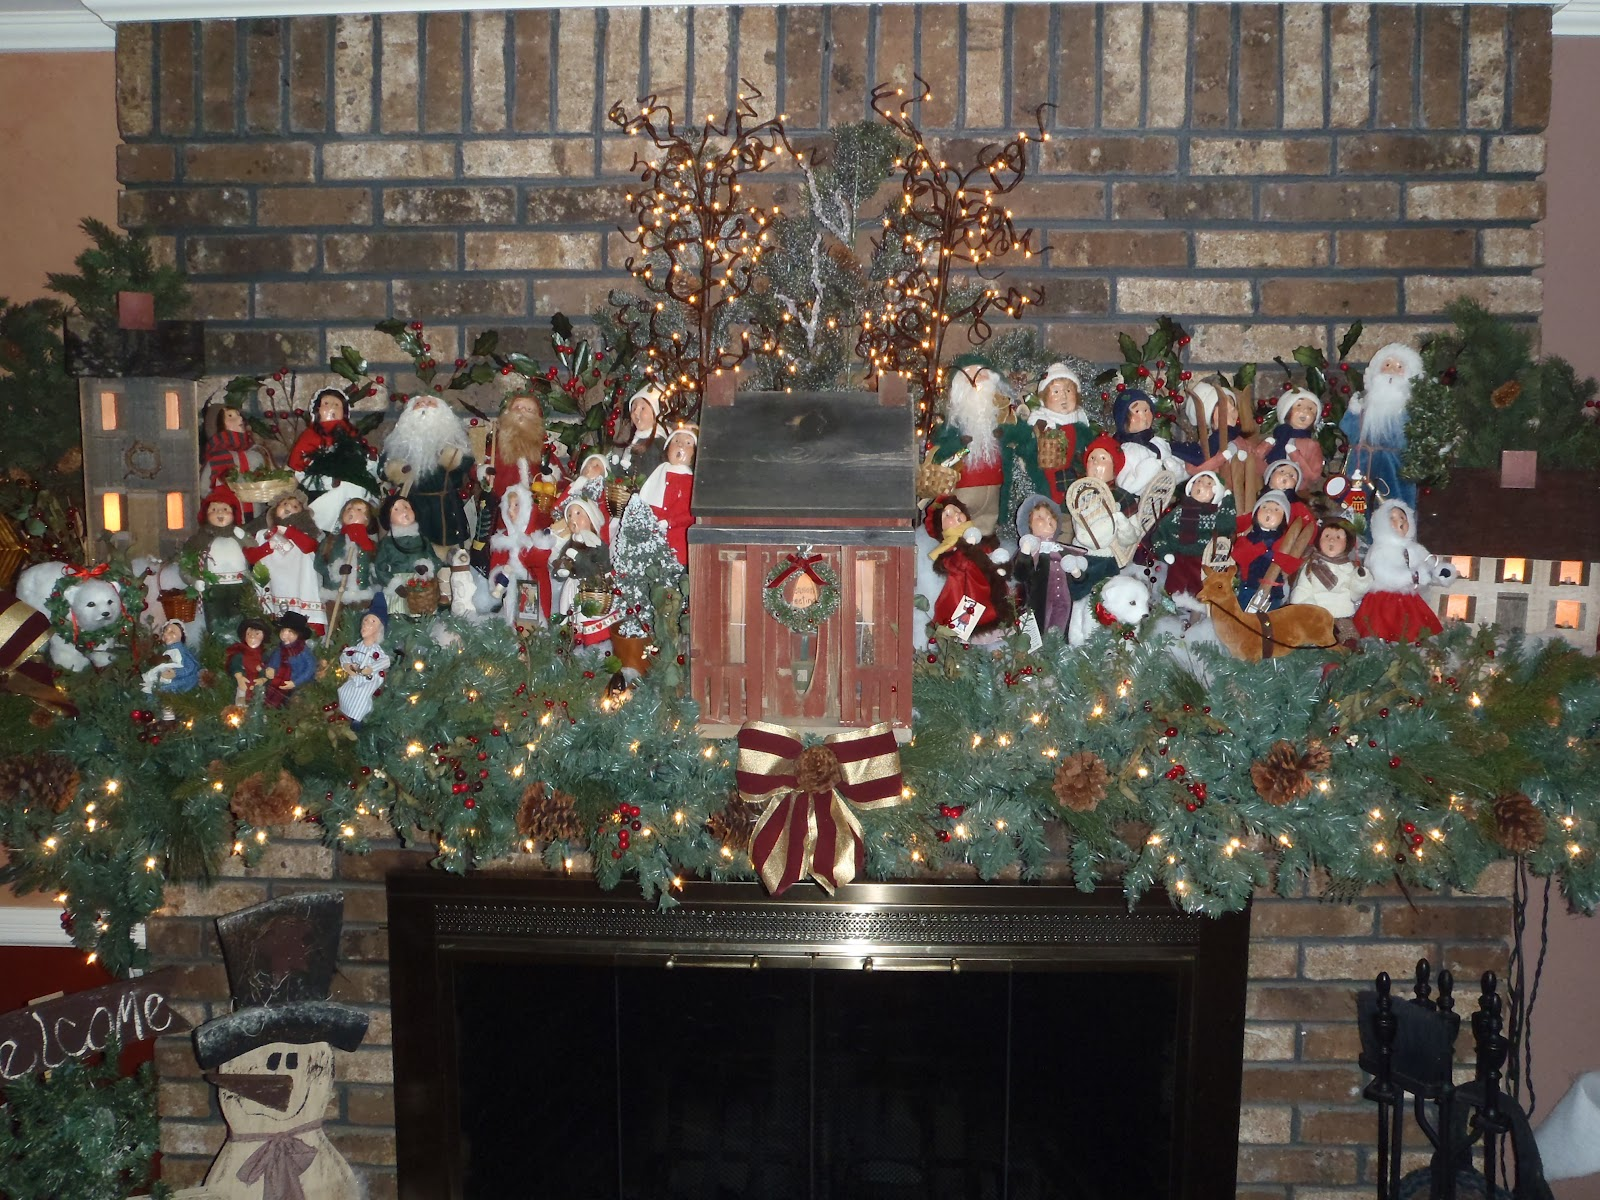 thank you so much for sharing your collection with the caroler community - Christmas 365